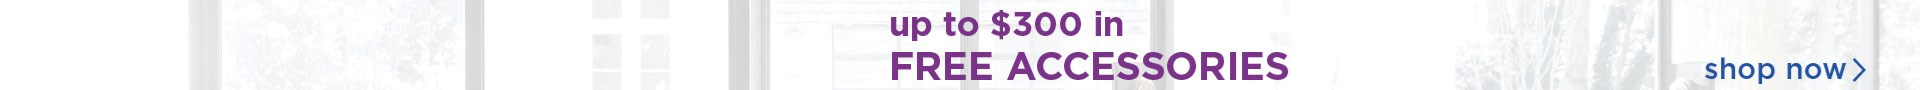 Get up to $300 in free accessories; see store for details.